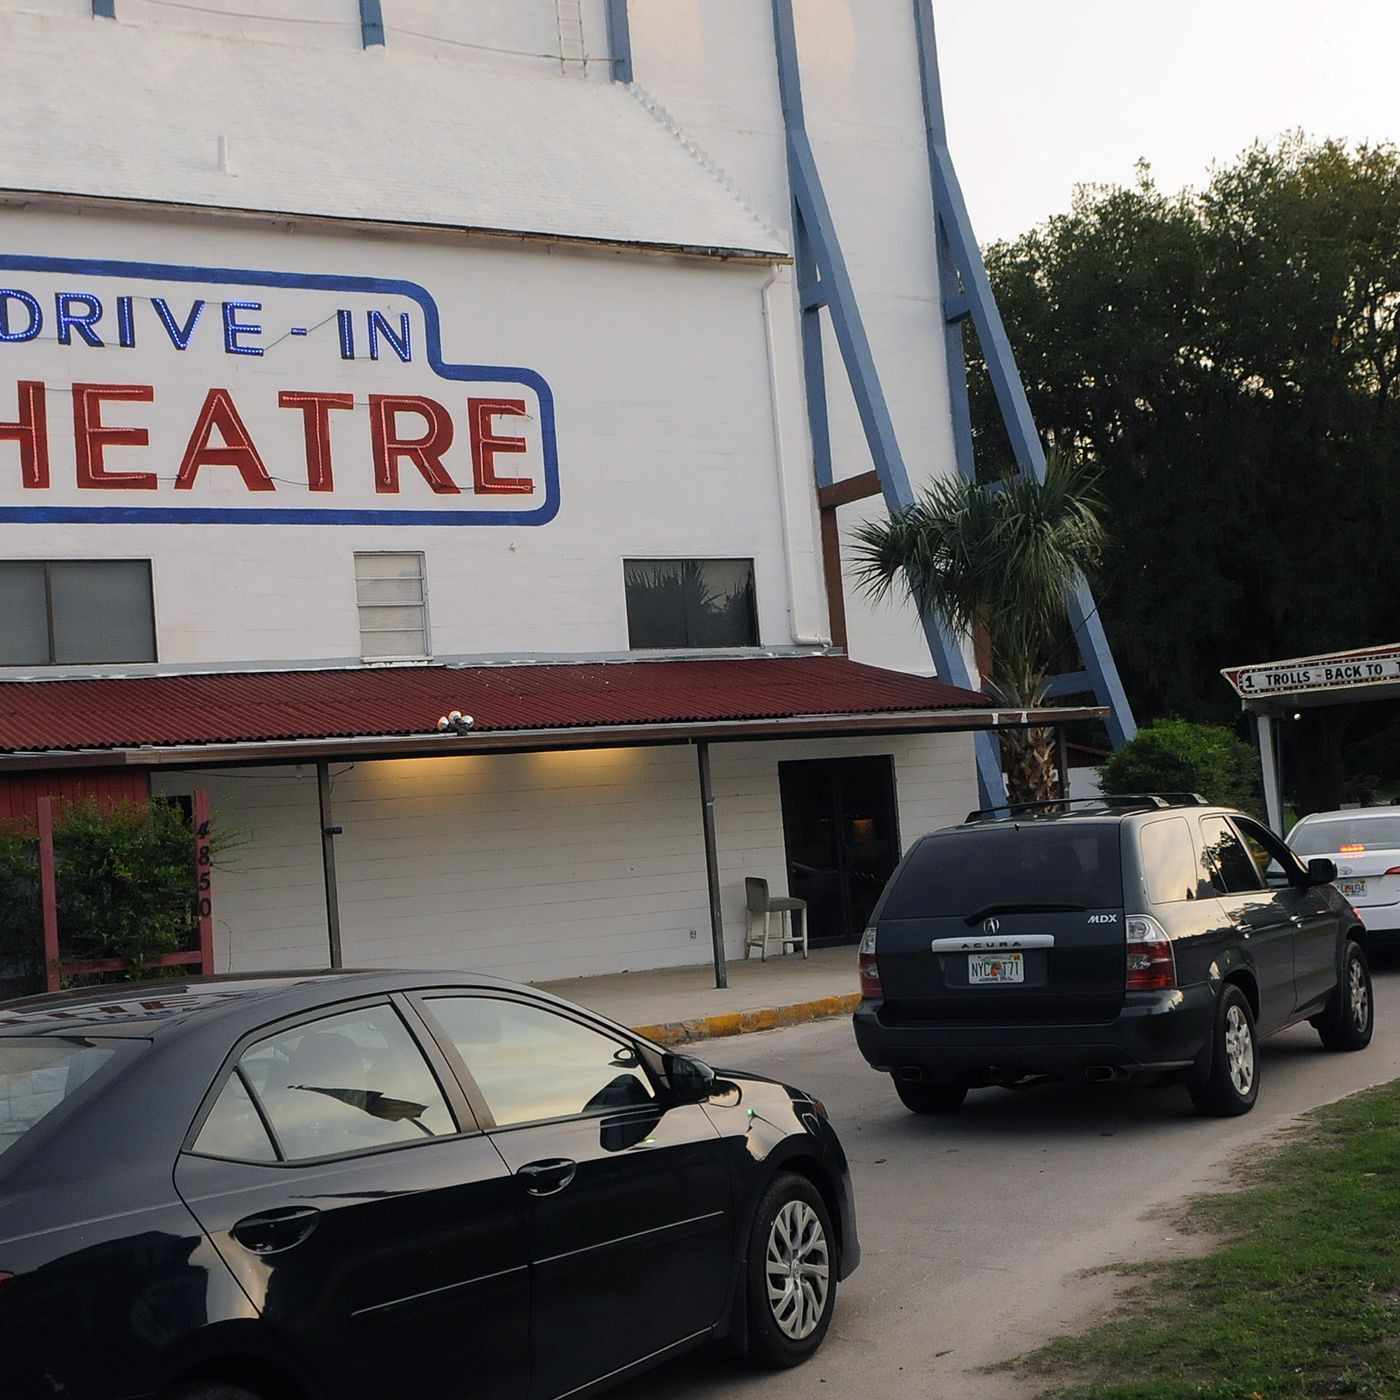 Tribeca partners with AT&T and IMAX to launch summer movie drive-in series  - The Verge